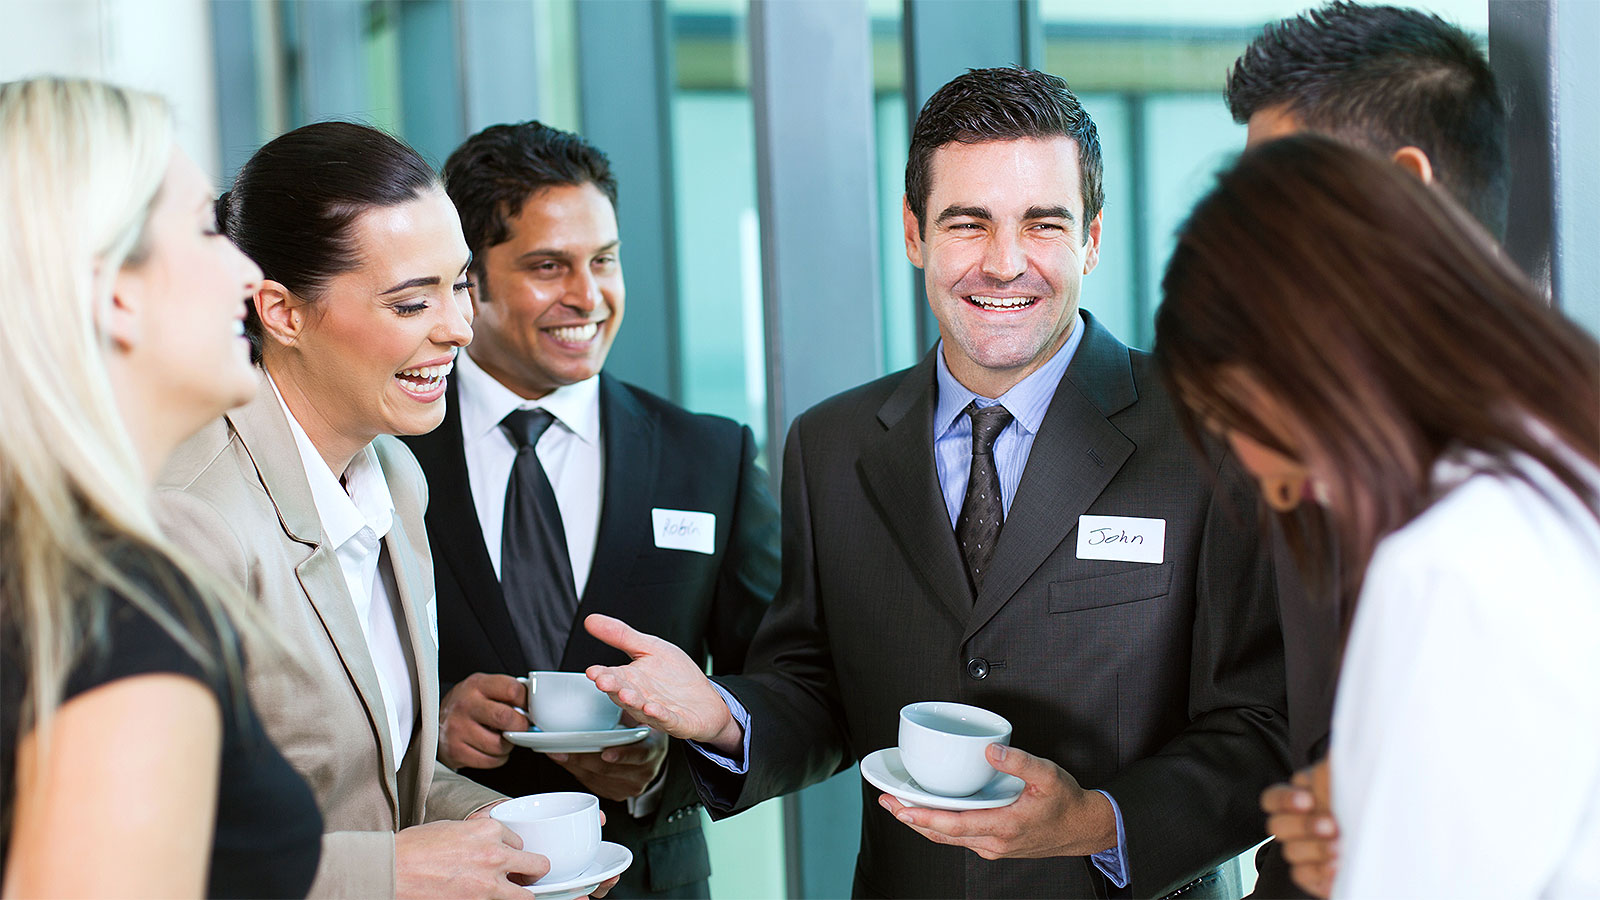 5 tips for improving your networking skills from professionals who've mastered it